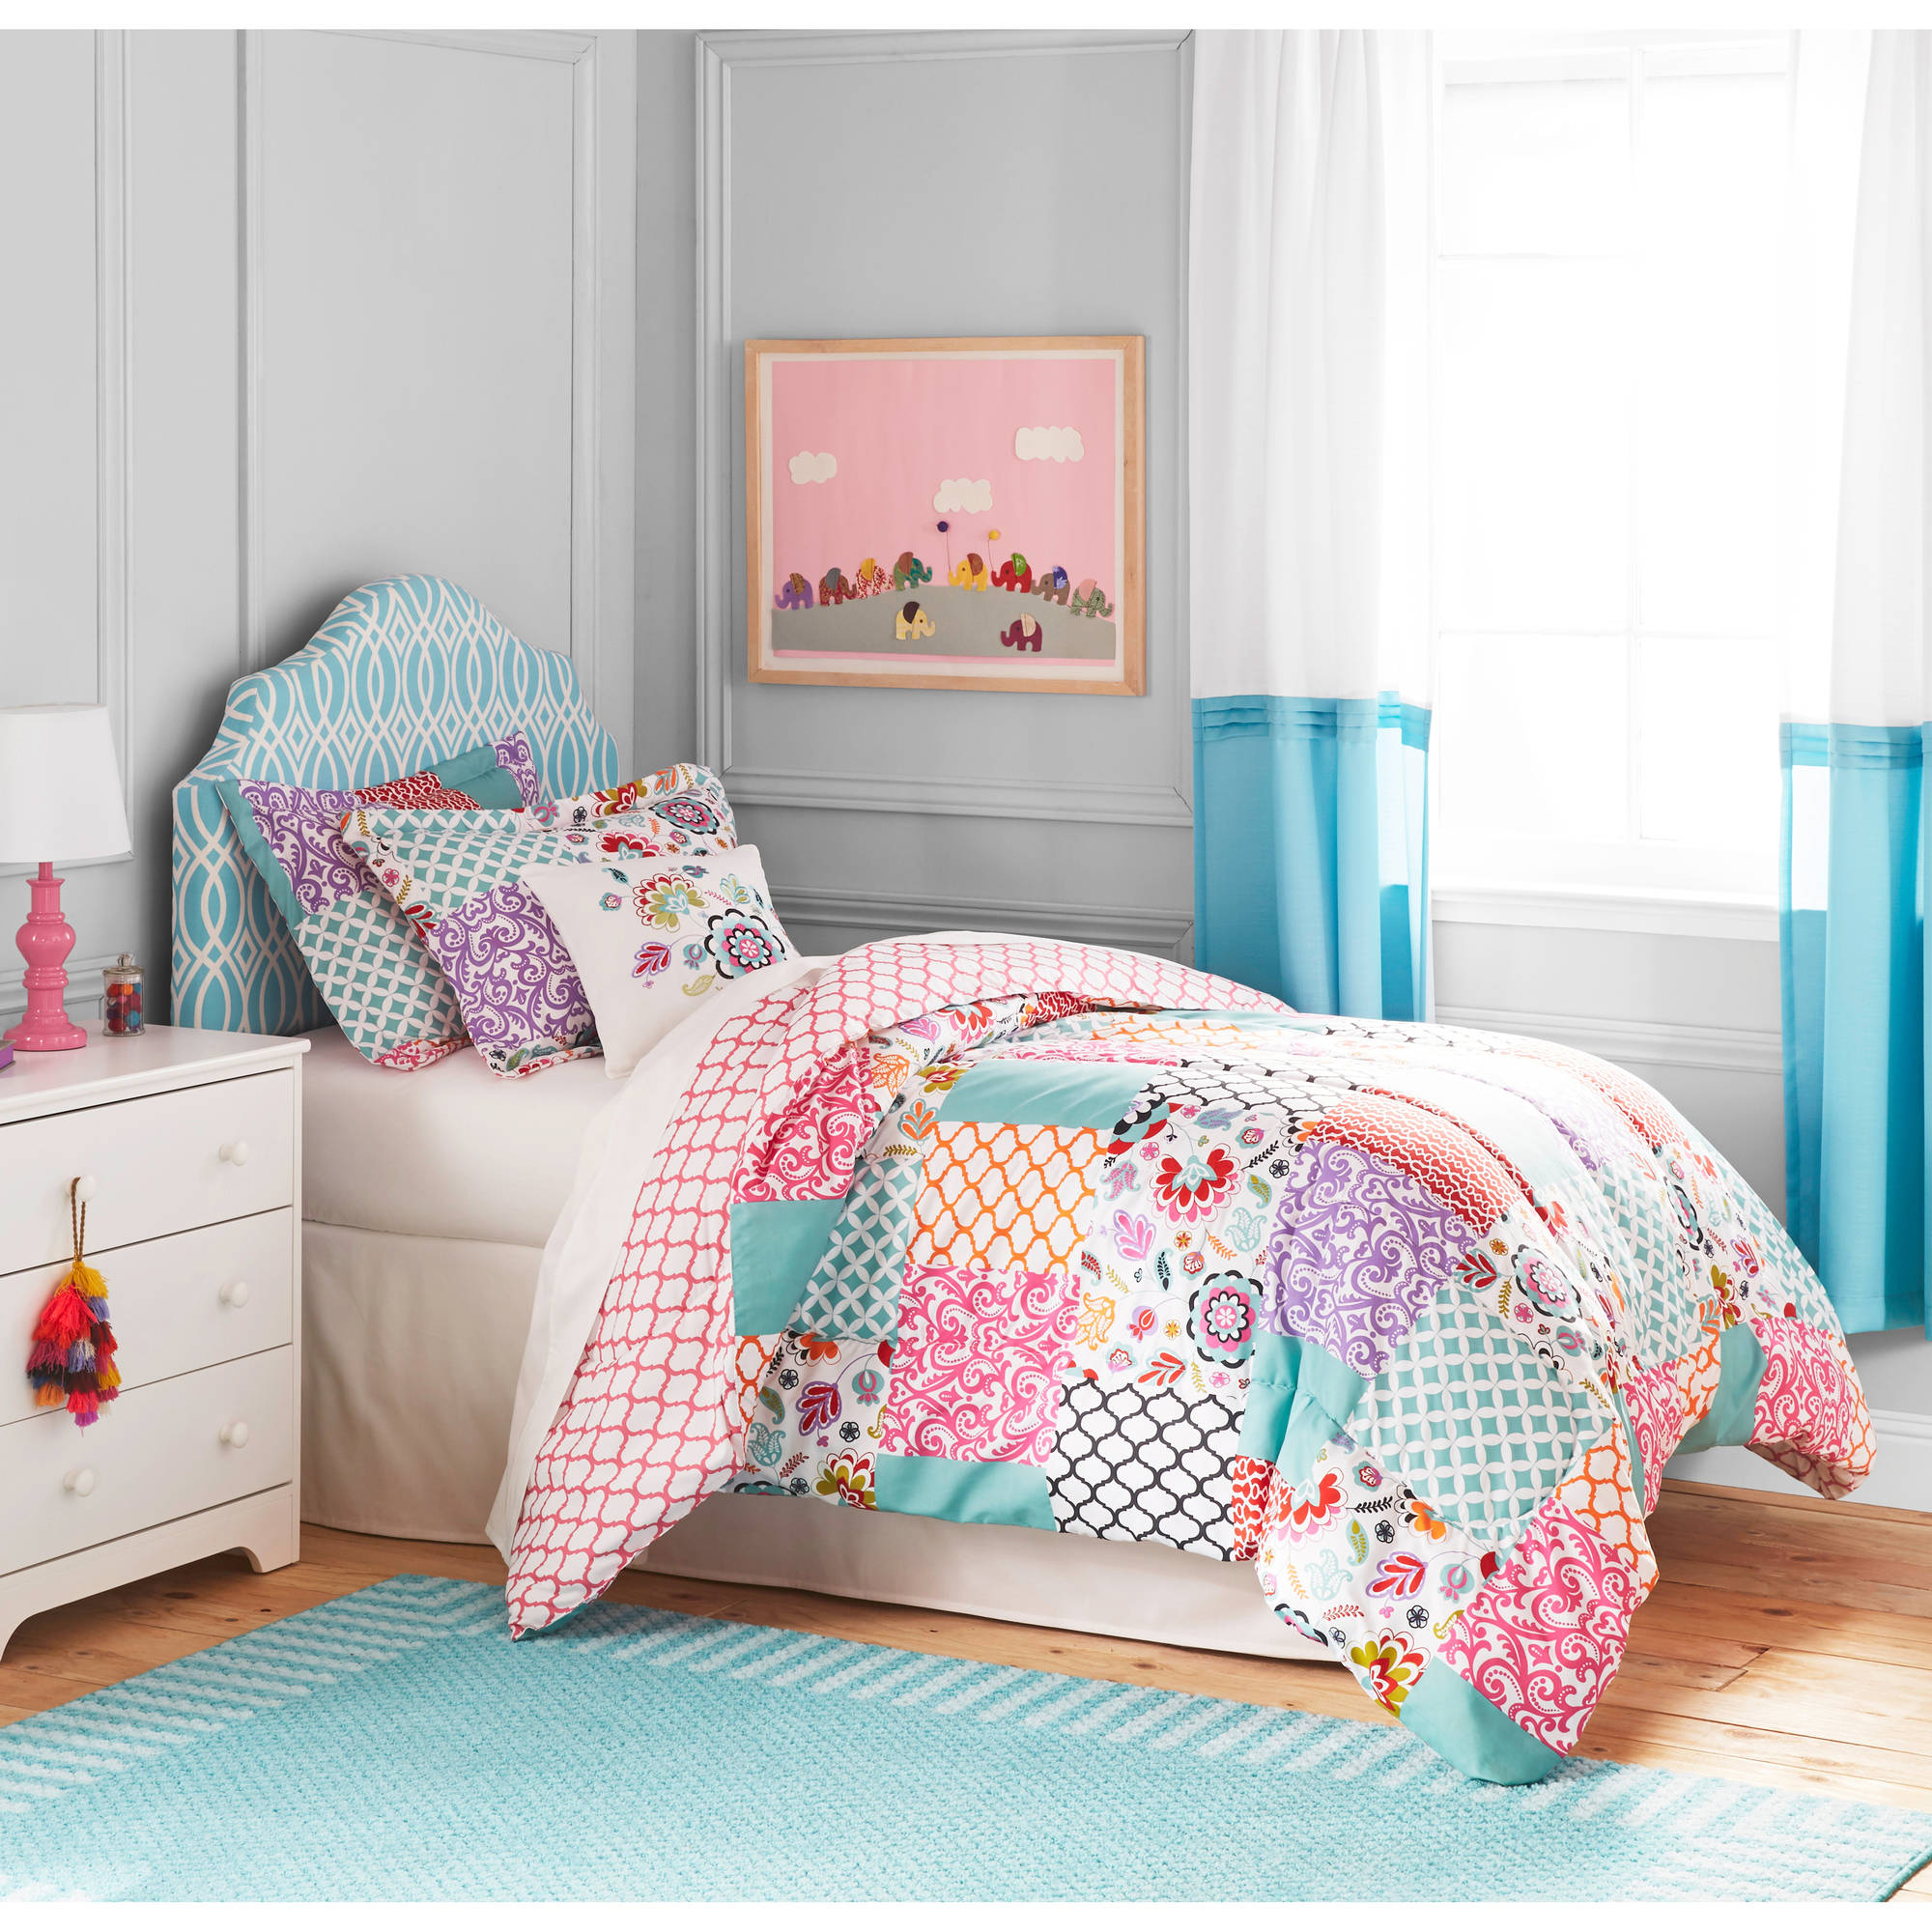 girls bedding Details about Kids-Teens Floral Patchwork 3-piece Bedding Comforter Set  TWIN Pillow Sham